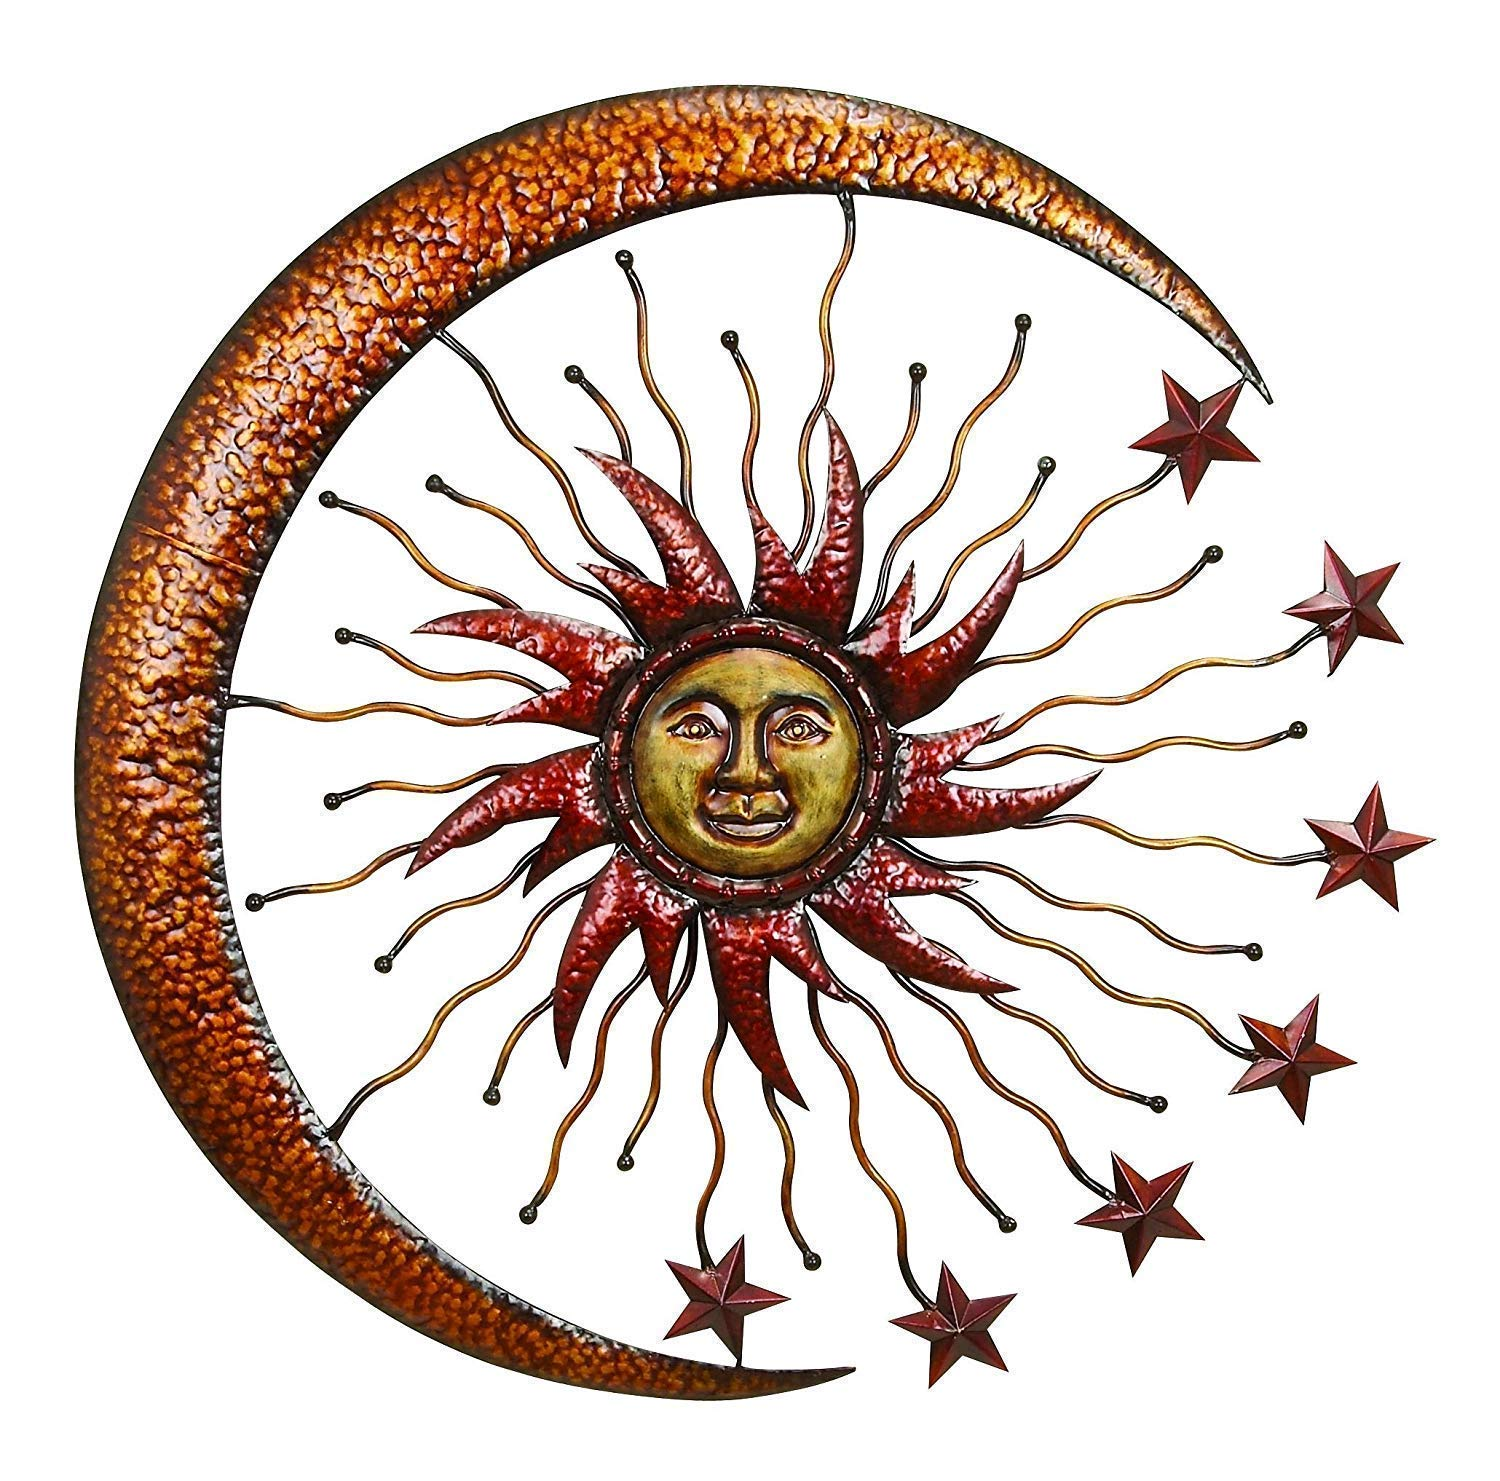 Bellaa 20025 World Best Sun Moon Stars Metal Wall Hanging Garden Art 36''